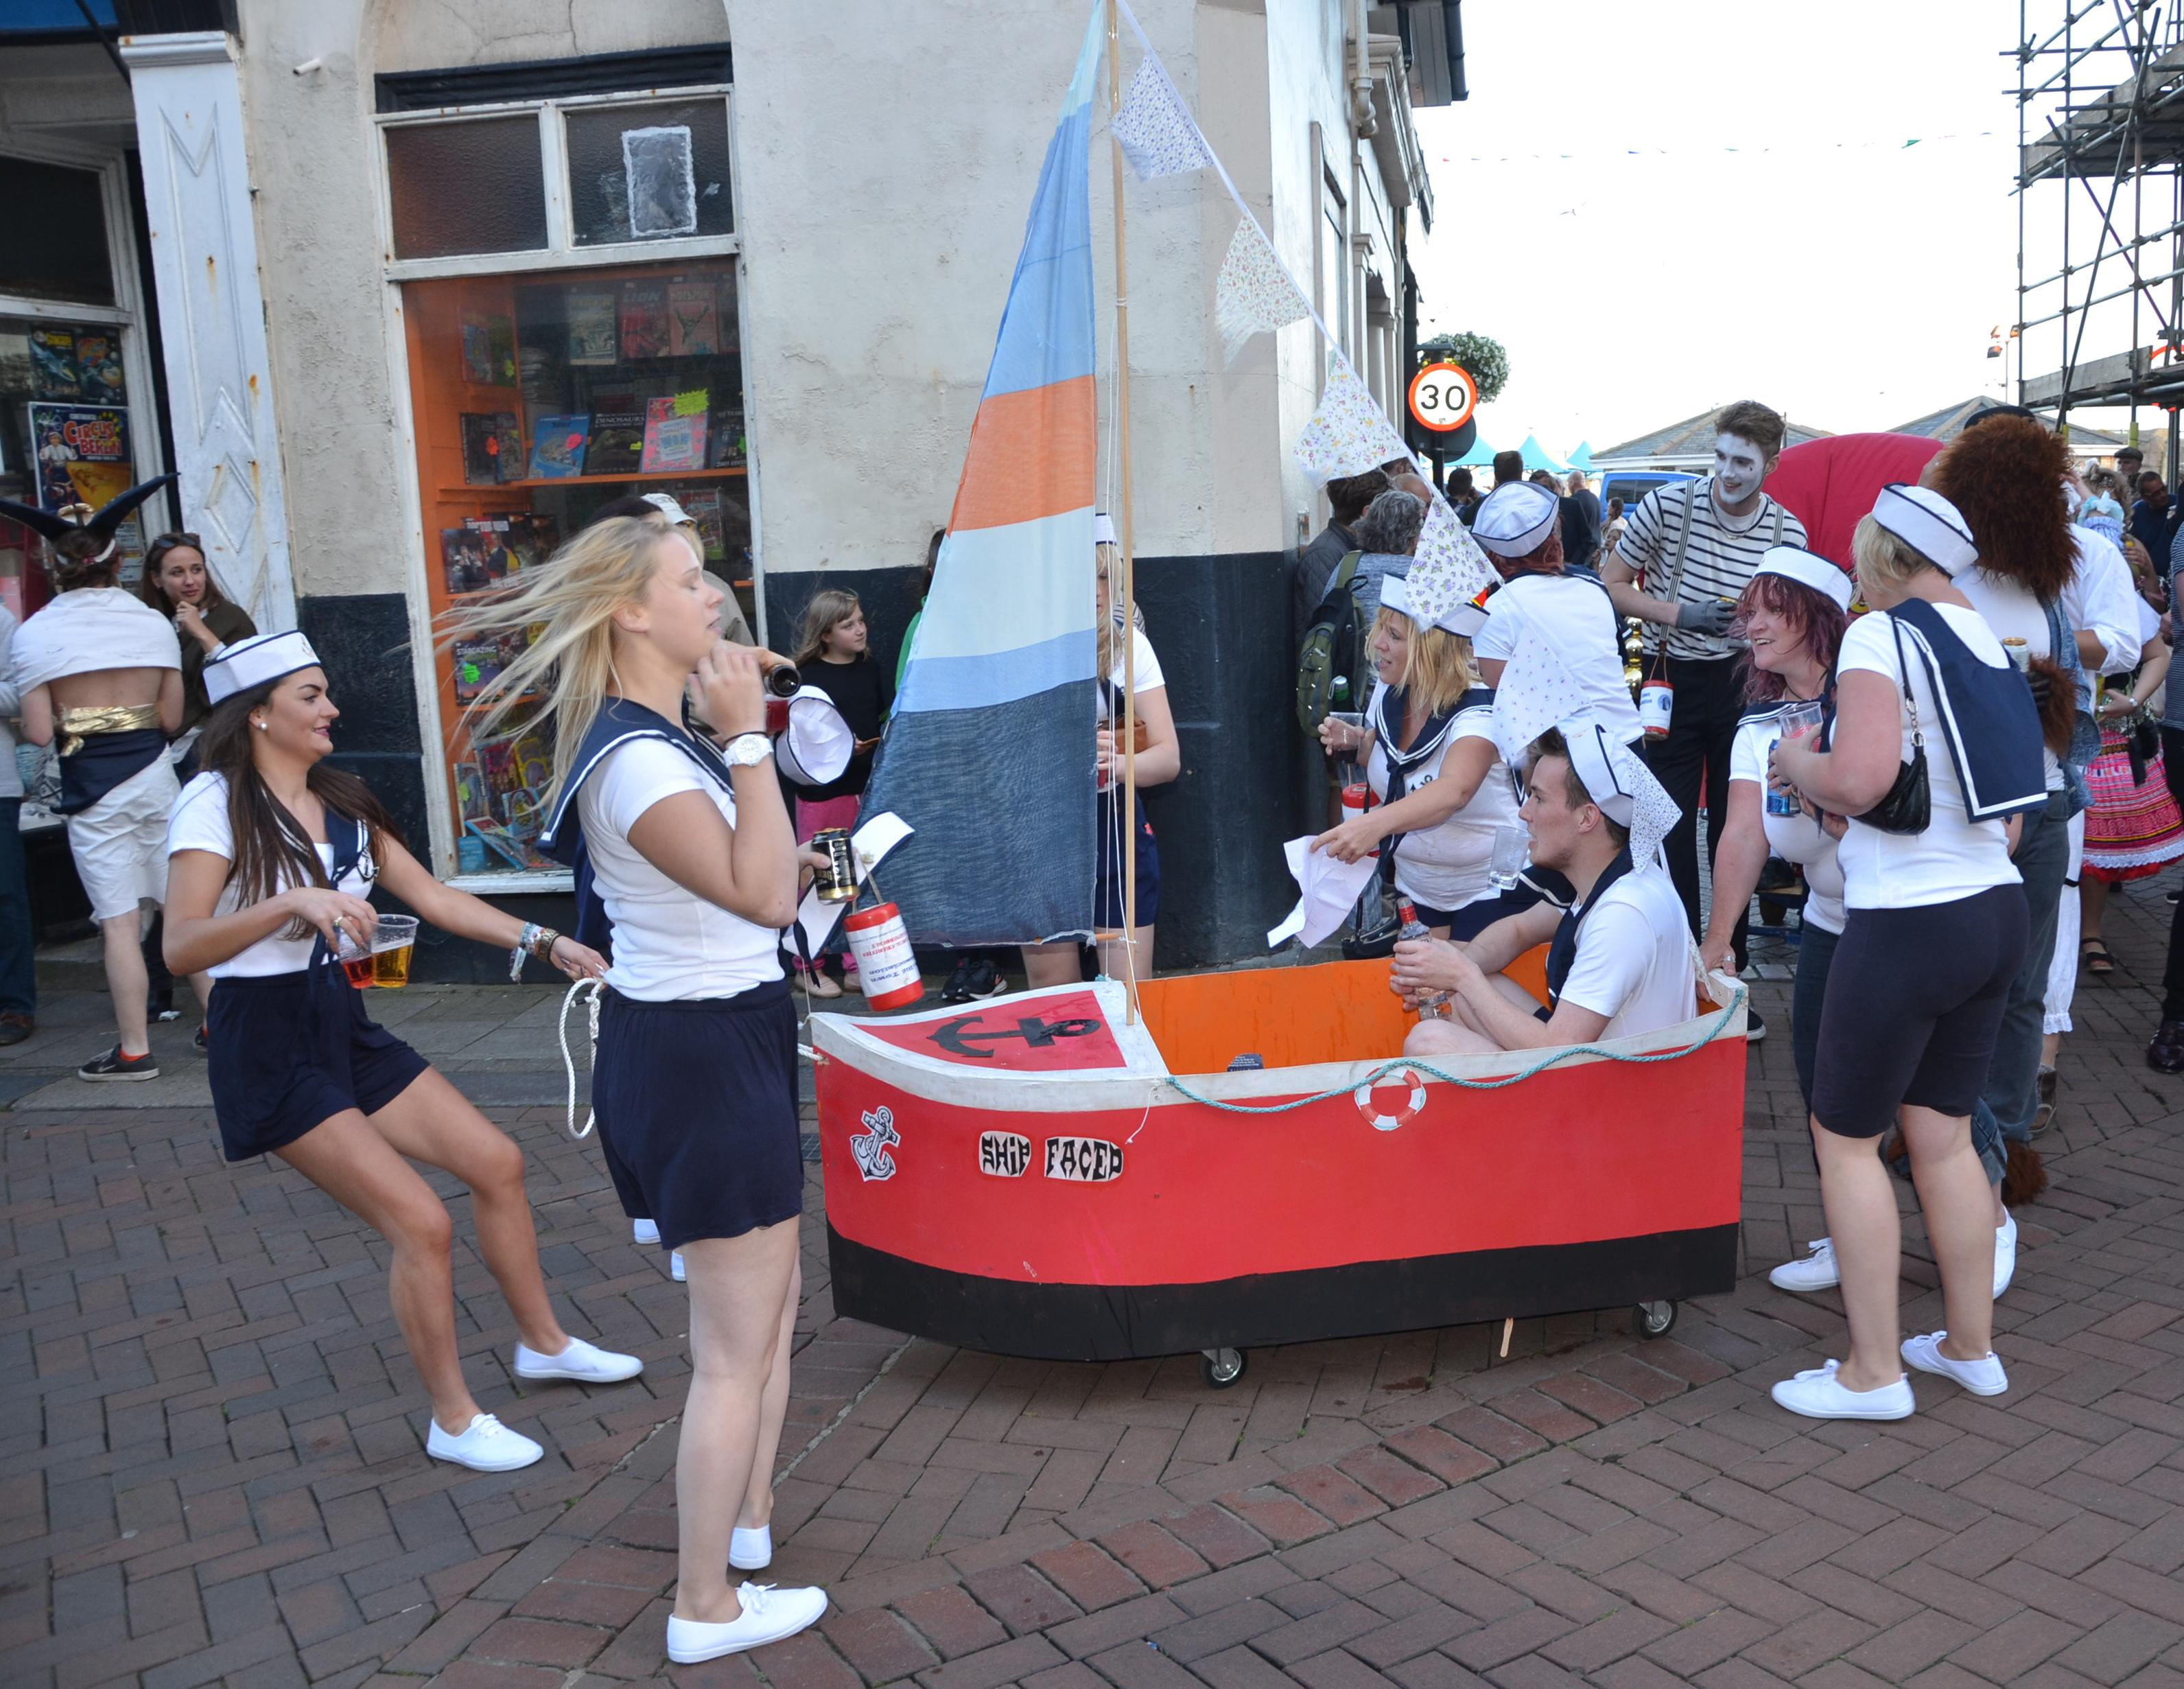 "Get your team together for a great night (with decorated pram, of course!) that's often described as one of the best in Old Town Week!  <div class=""alert alert-warning"" role=""alert"">Register at The Cutter Pub, on the seafront opposite the boating lake, <strong>by 6pm on Tuesday 1st August</strong></div>  Lots of money is raised for local charities by the teams who enter in this pub crawl.  Each team has their own theme and they decorate their pram and teams accordingly.    Due to the ever increasing size of this event, all teams must now be entered by 6pm on Tuesday 1st August at The Cutter Pub.    To be considered for judging, teams must arrive by 7pm, with the start time of the race to be between 7.30-8pm.    <div class=""alert alert-warning"" role=""alert"">This is a strictly over 18's event.  </div>  Any questions please call 01424-272099. Proceeds to H.O.T.Carnival Association."